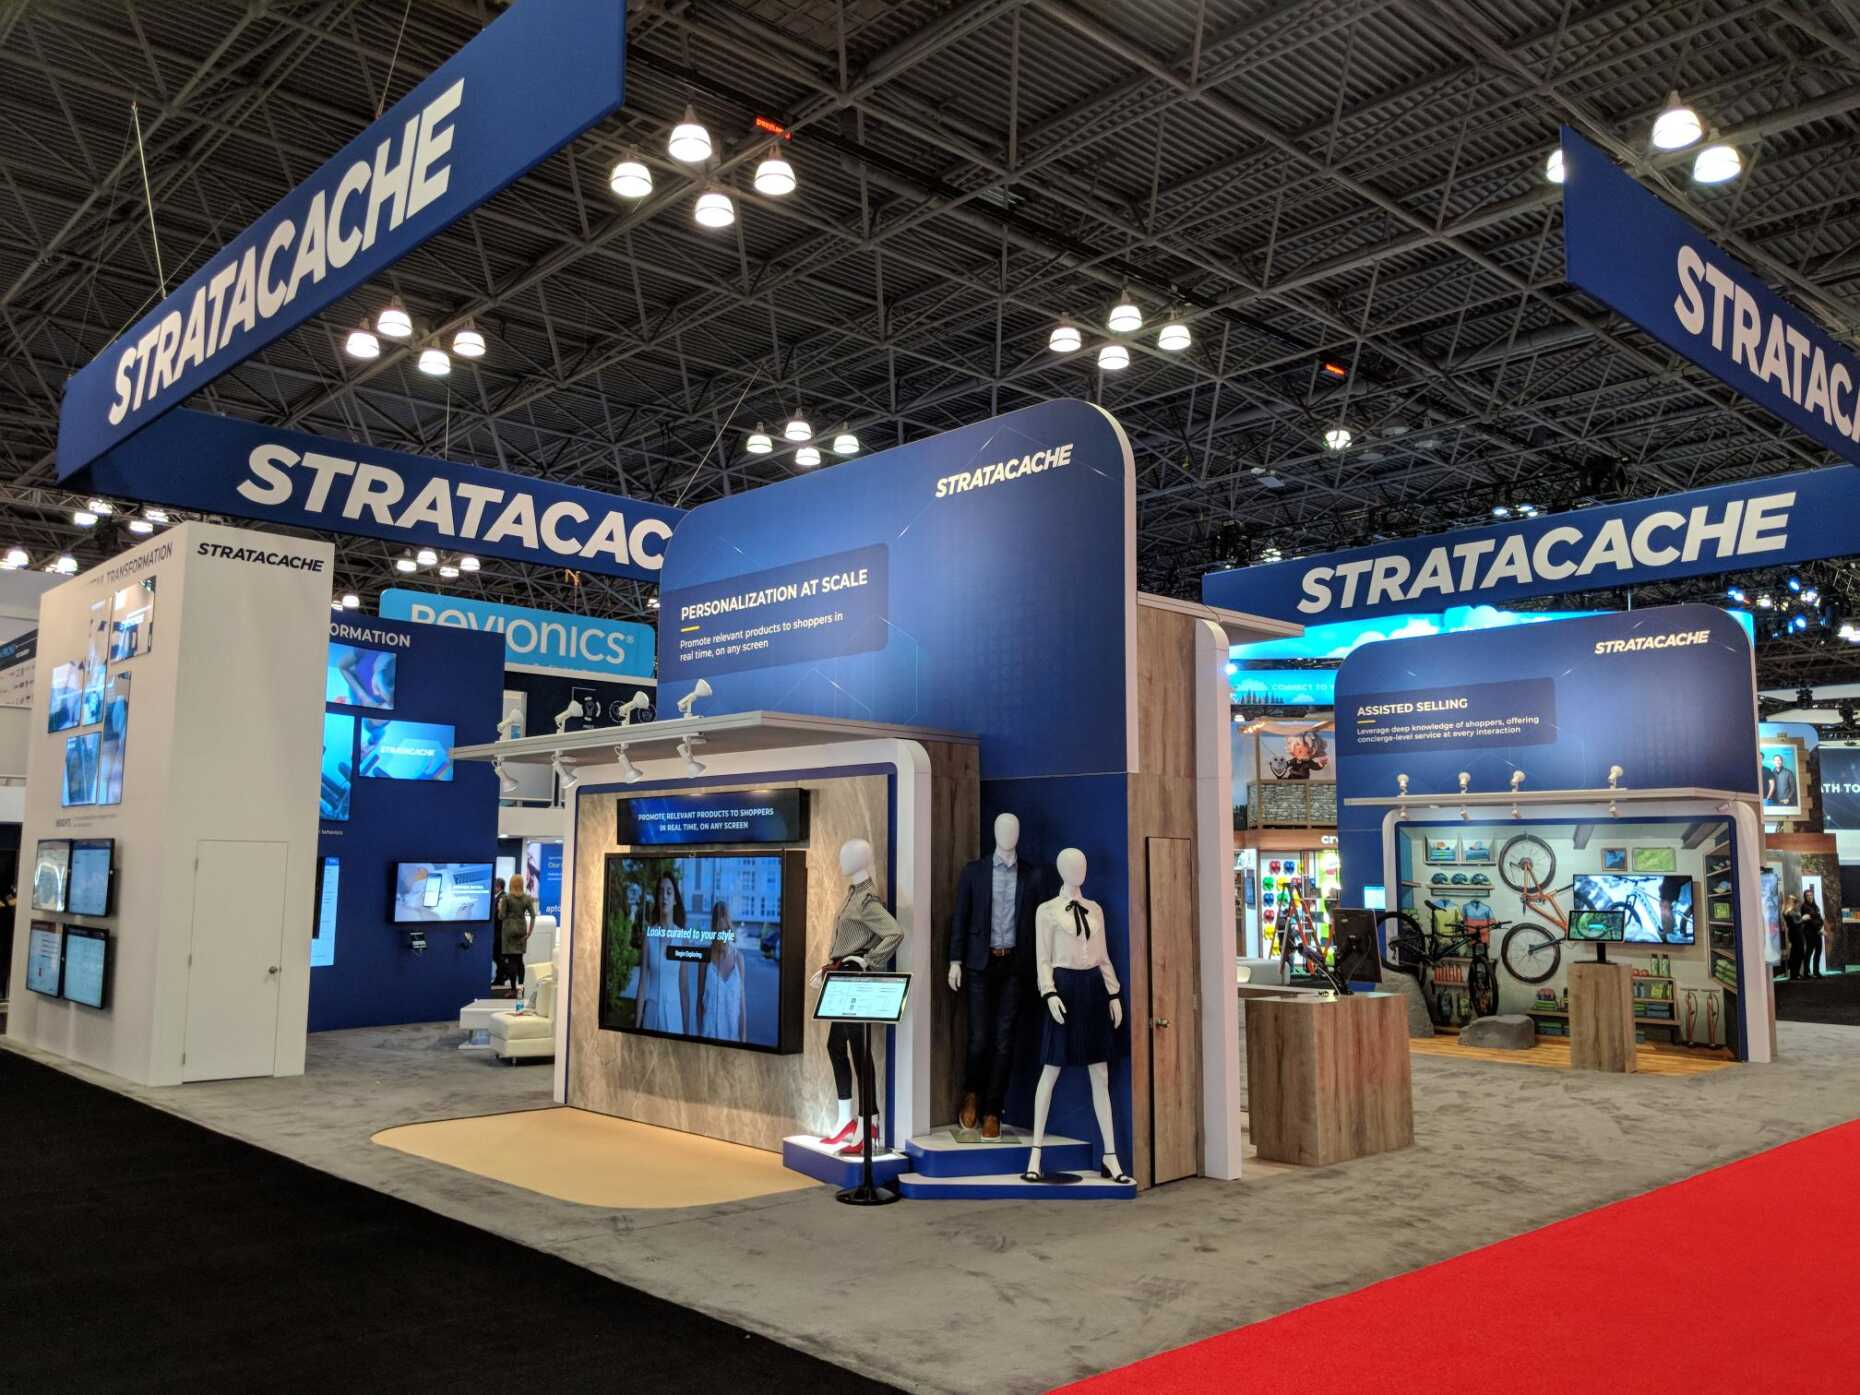 Stratacache at NRA